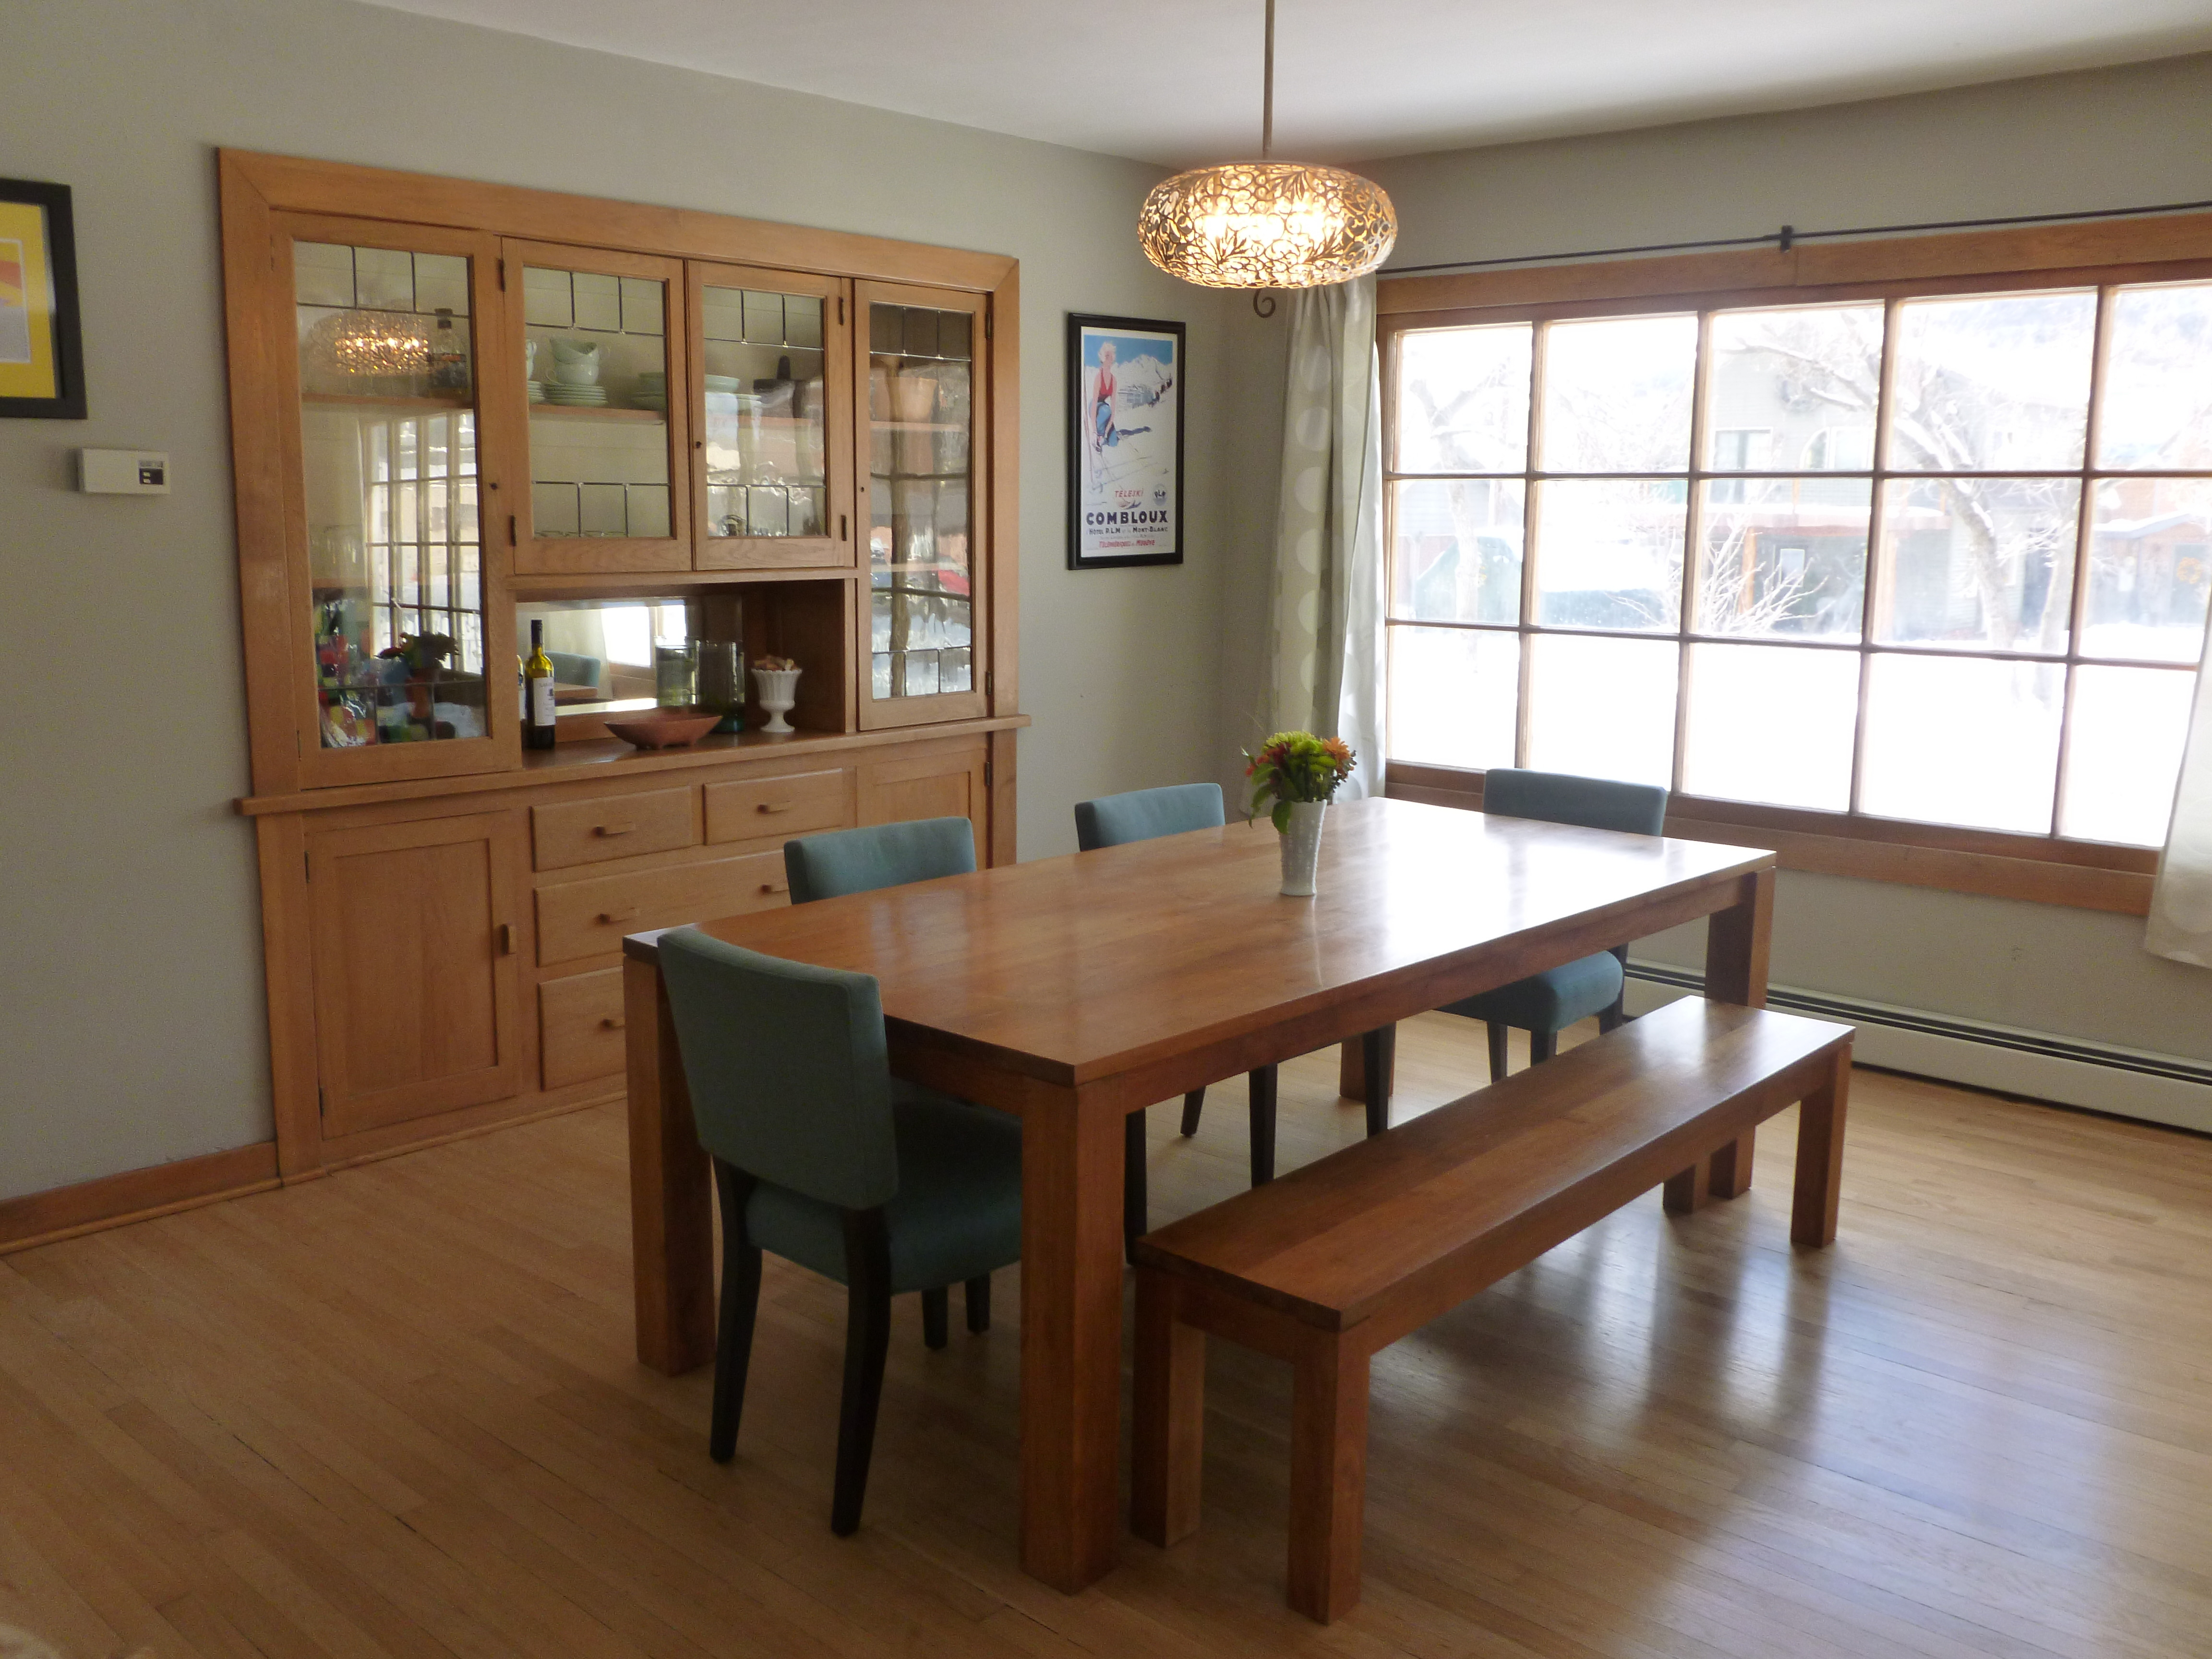 hardwood floor refinishing northern ky of charming home located in the heart of steamboat springs boligbytte regarding previous next